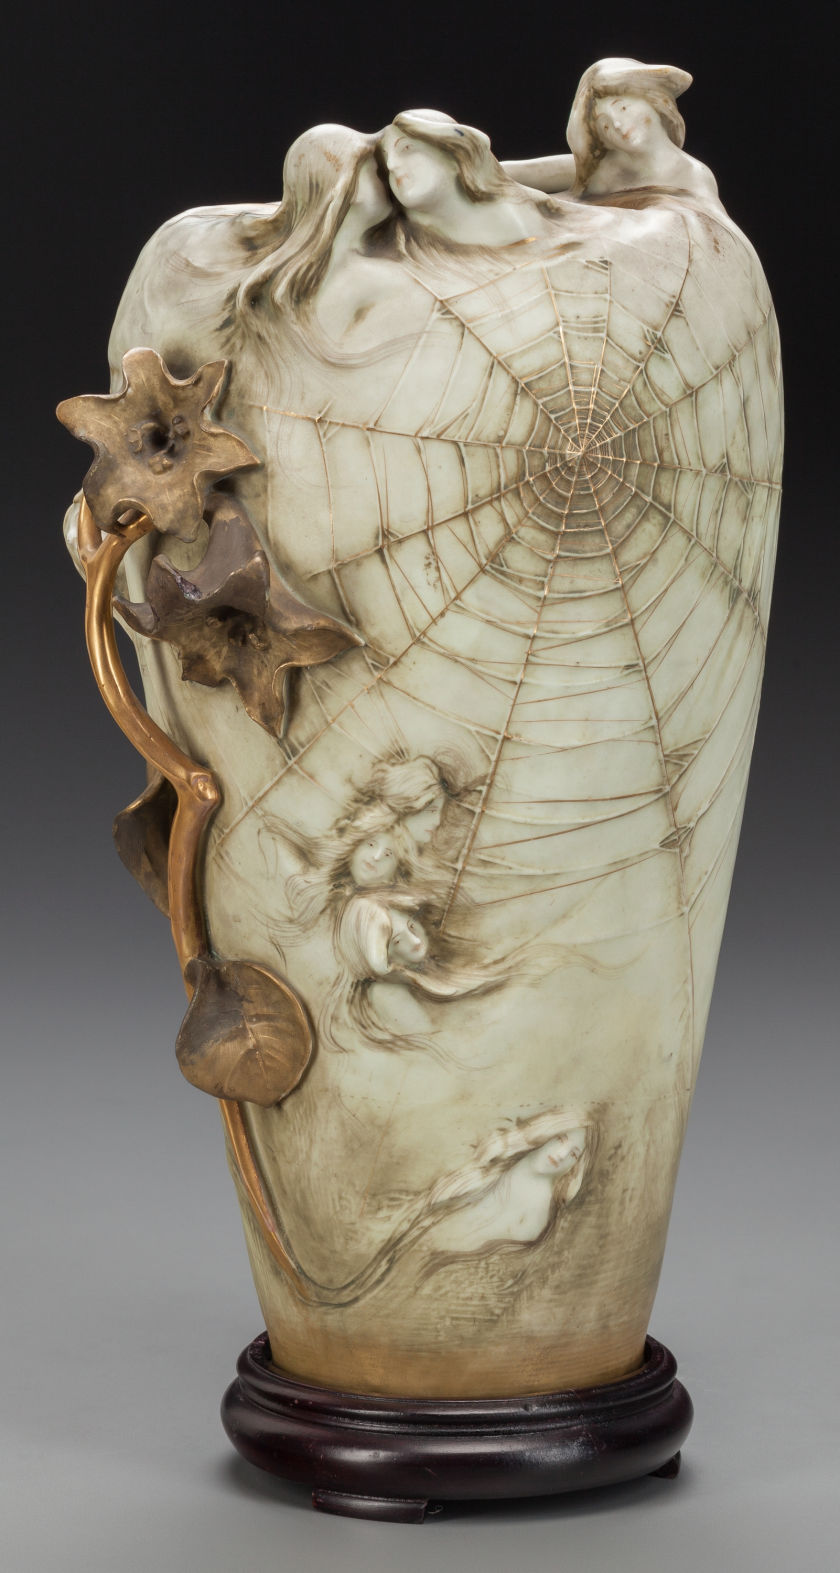 We'll have this great Amphora vase at the show